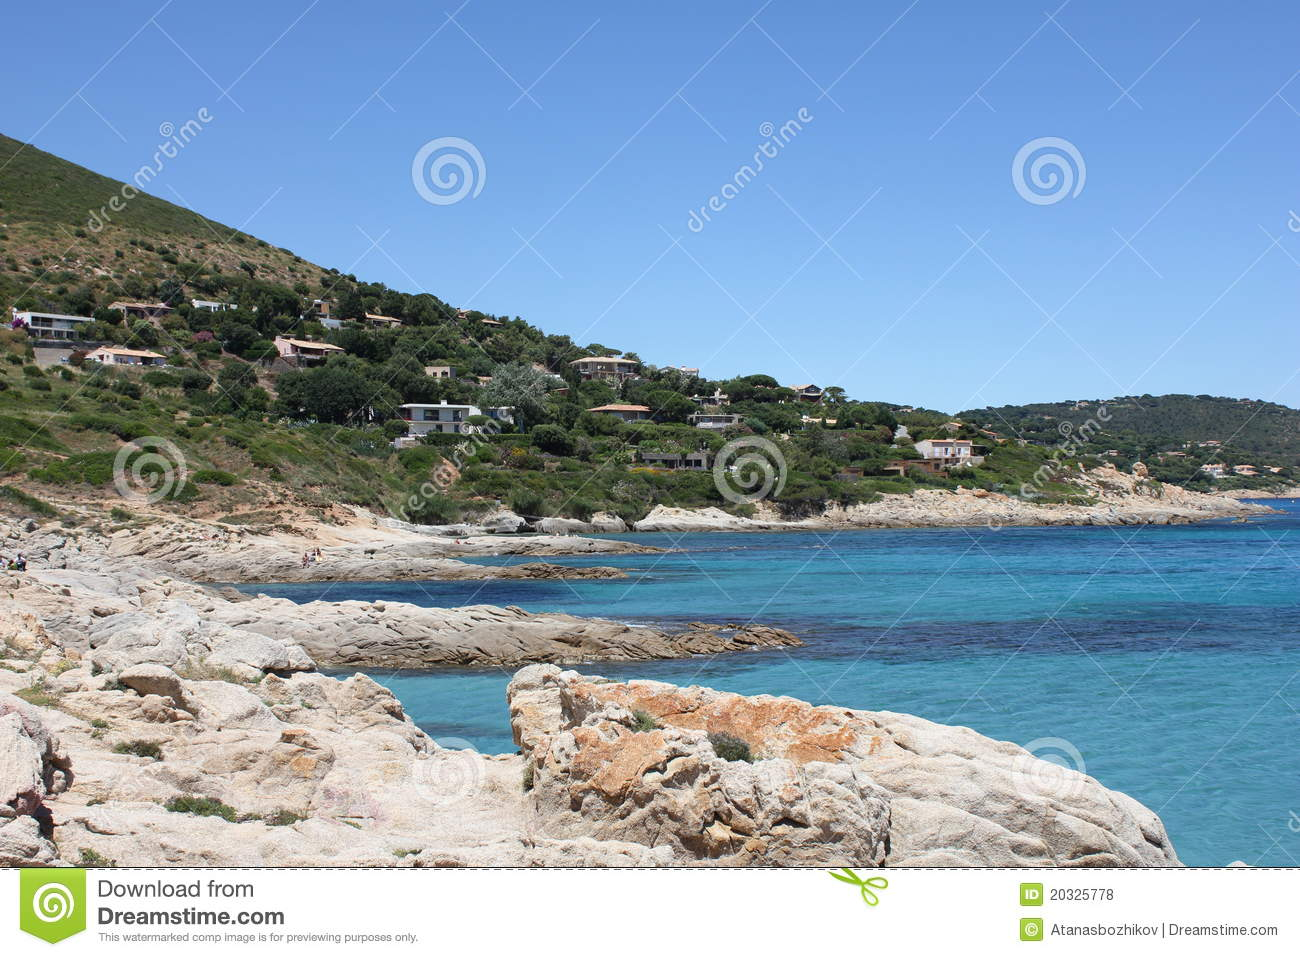 Download Bonne Terrase Beach On The French Riviera Stock Photo - Image of calm, parc: 20325778